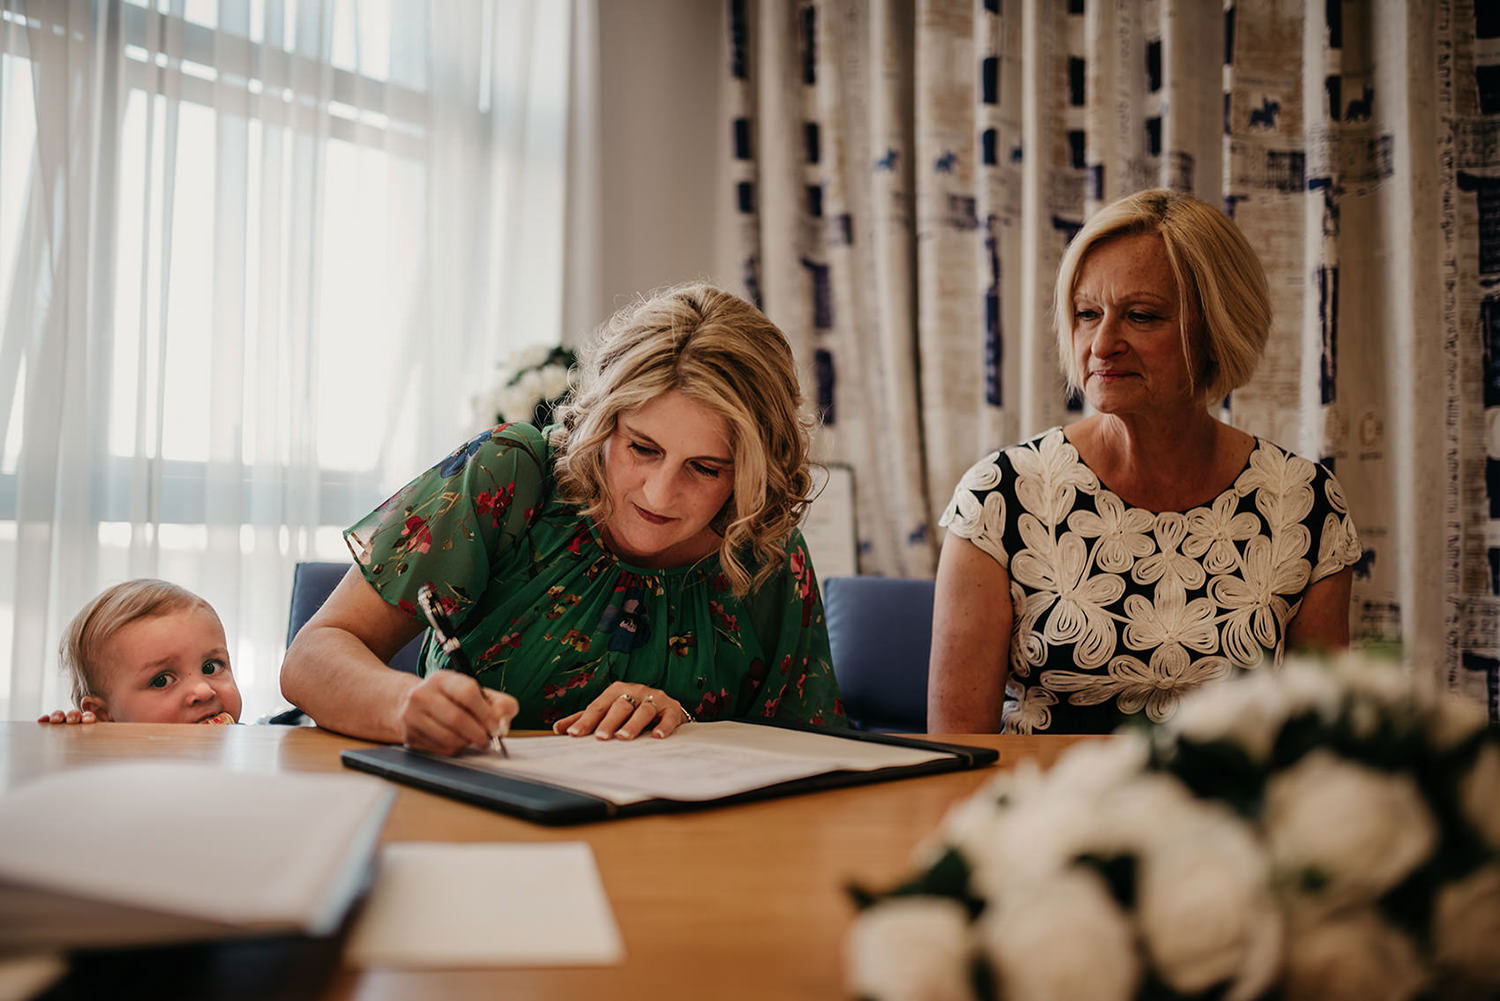 Witnesses signing the wedding contract